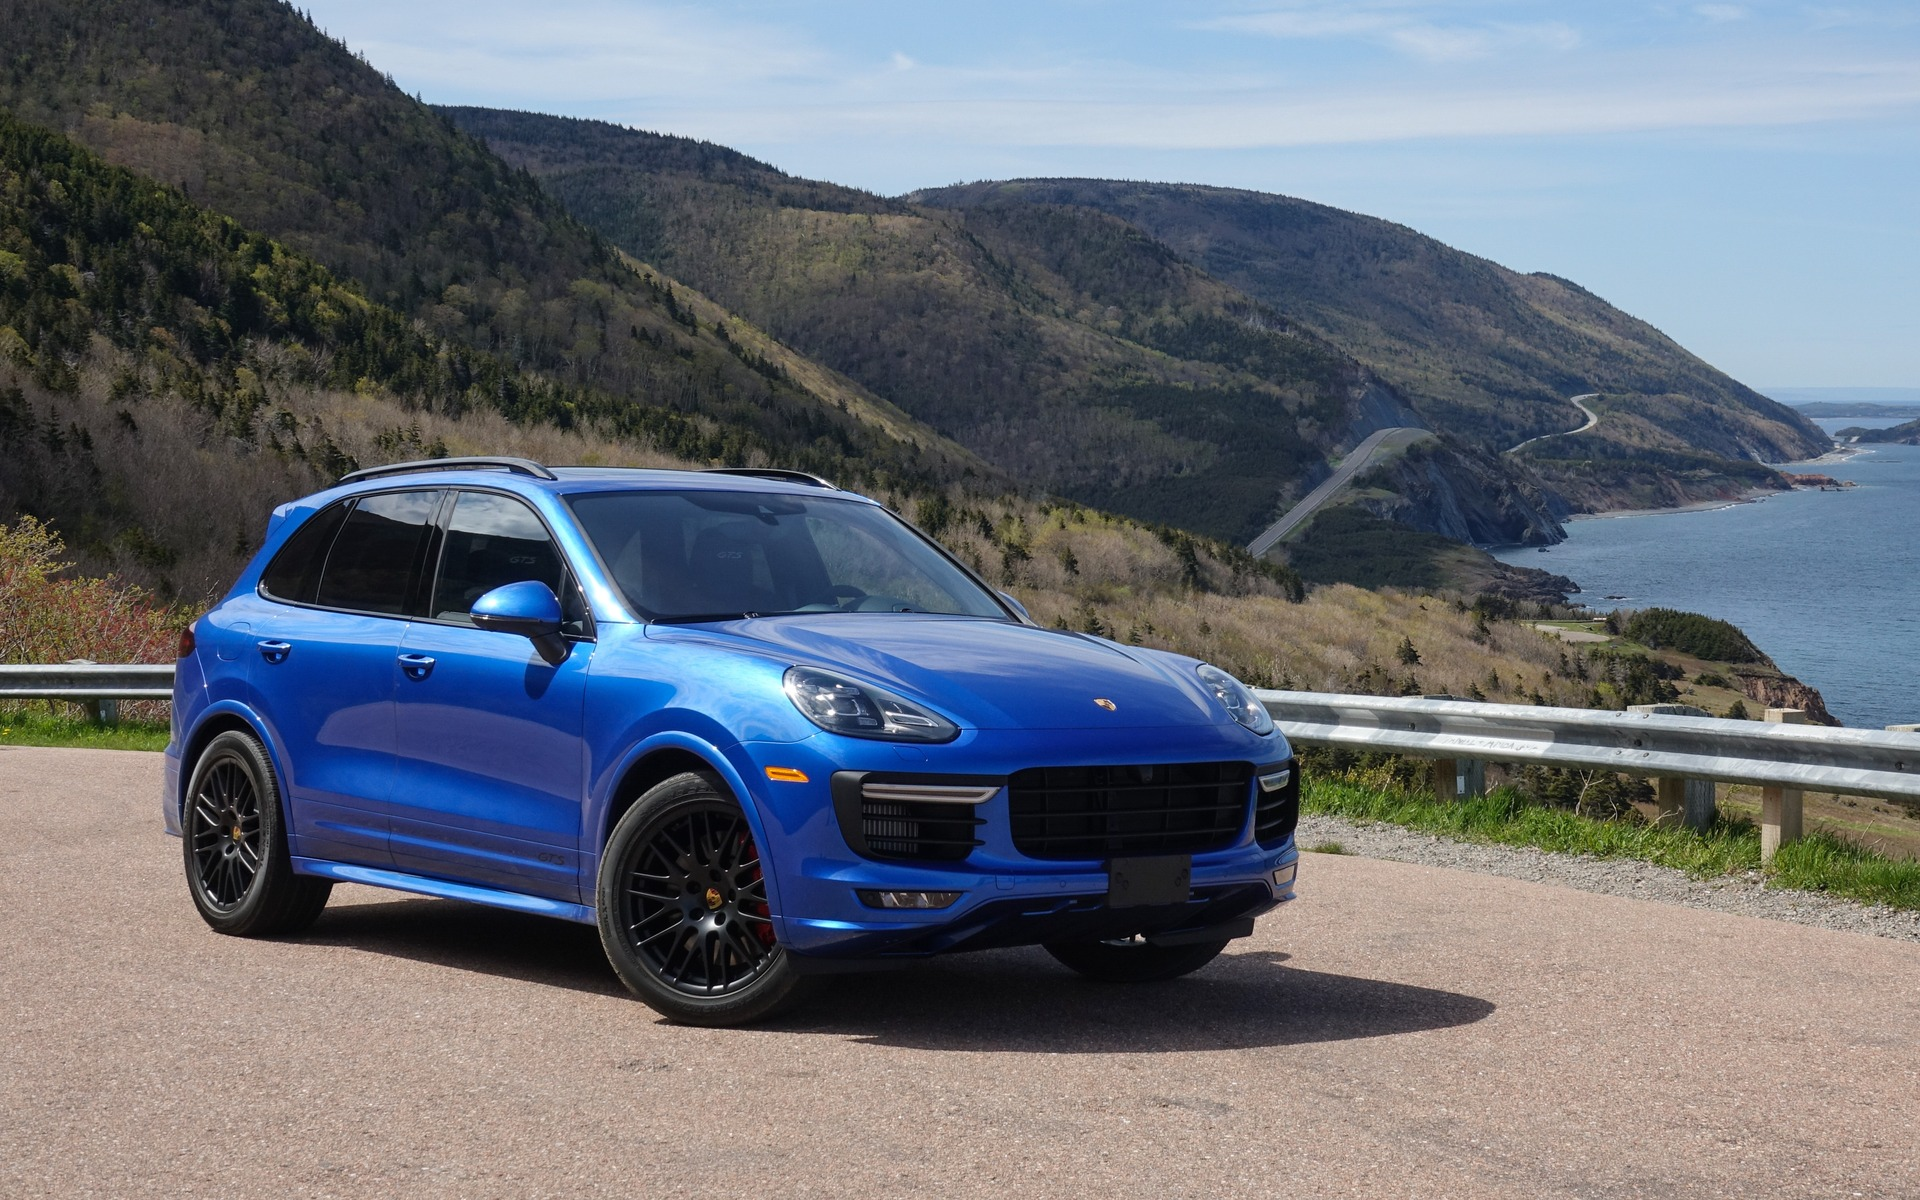 Porsche Cayenne Gts And Macan Turbo On The Cabot Trail The